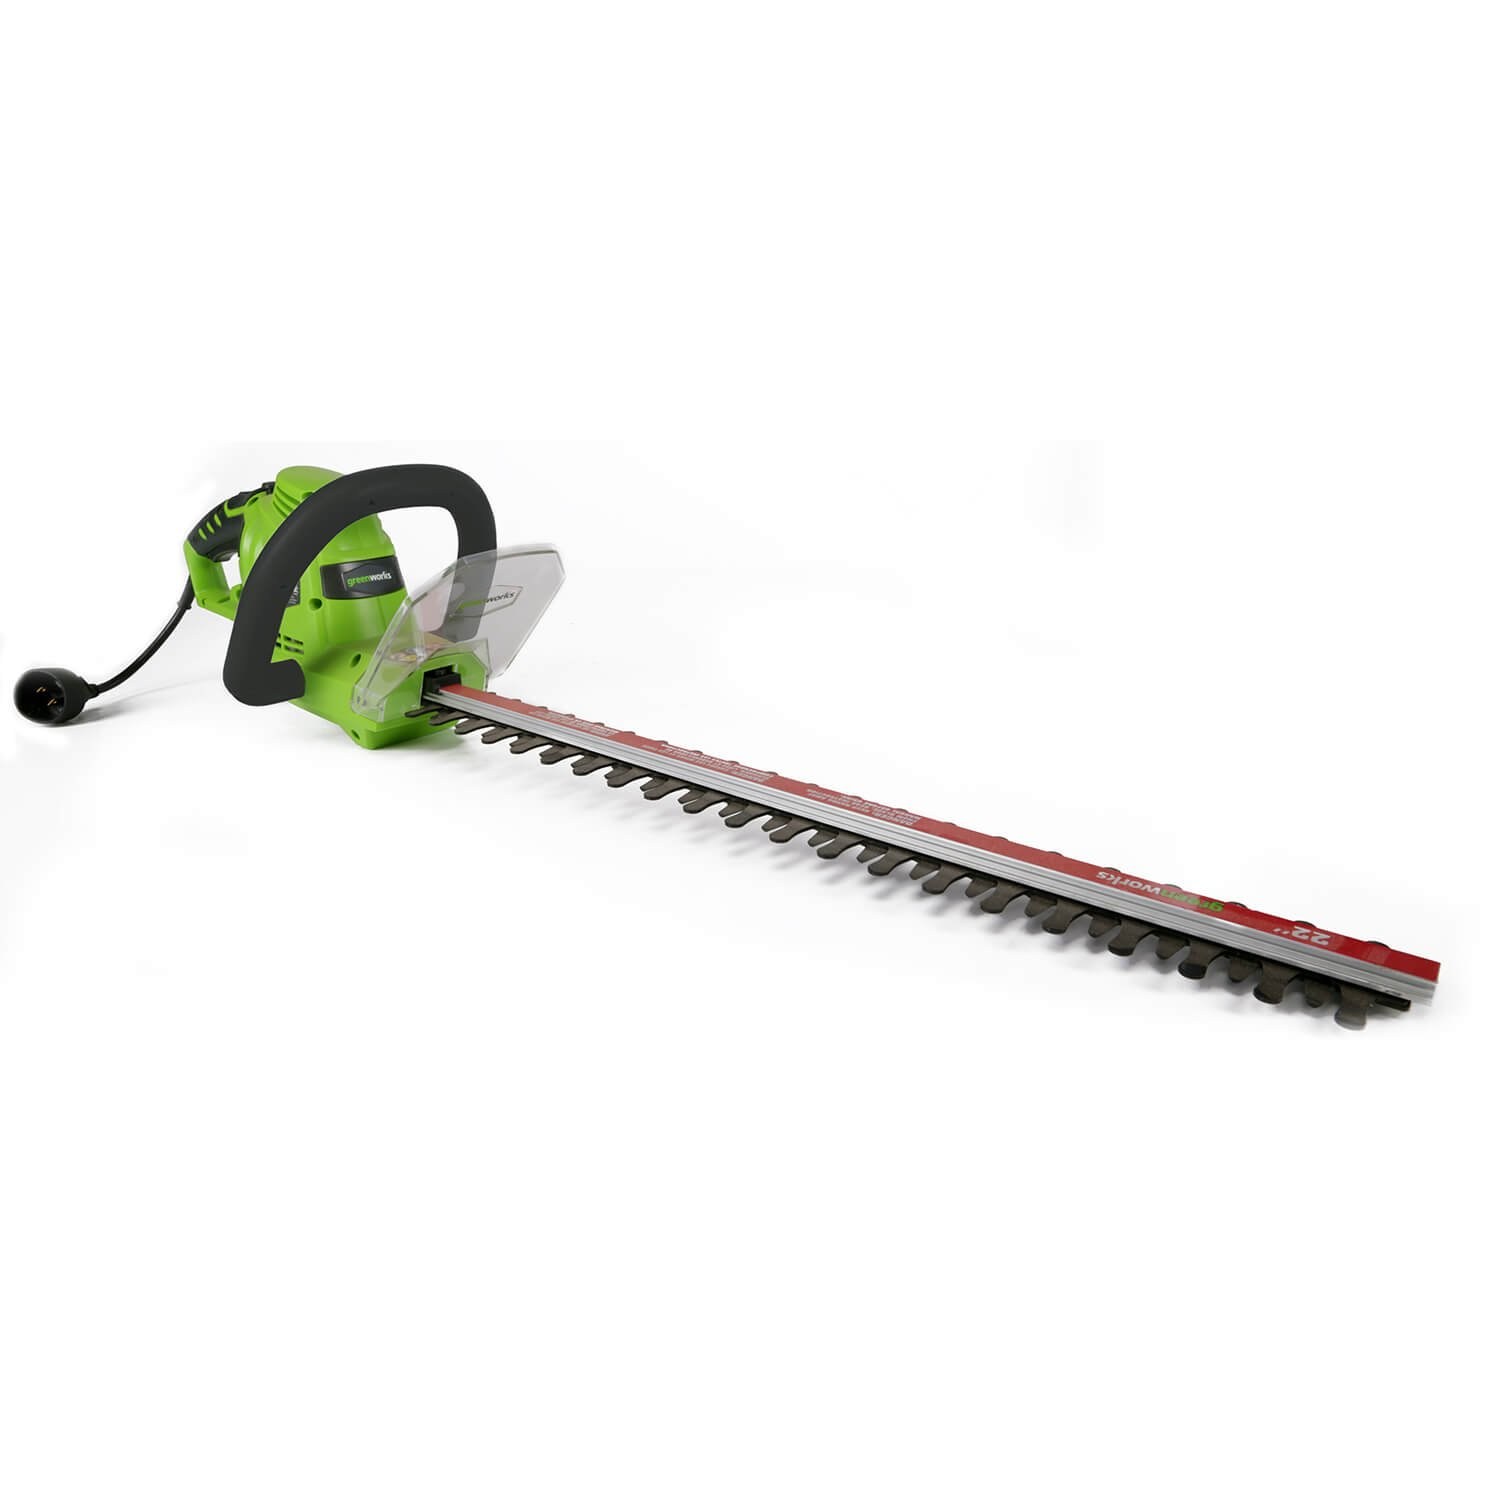 Greenworks 22-Inch 4 Amp Dual-Action Corded Hedge Trimmer 22122 by Greenworks